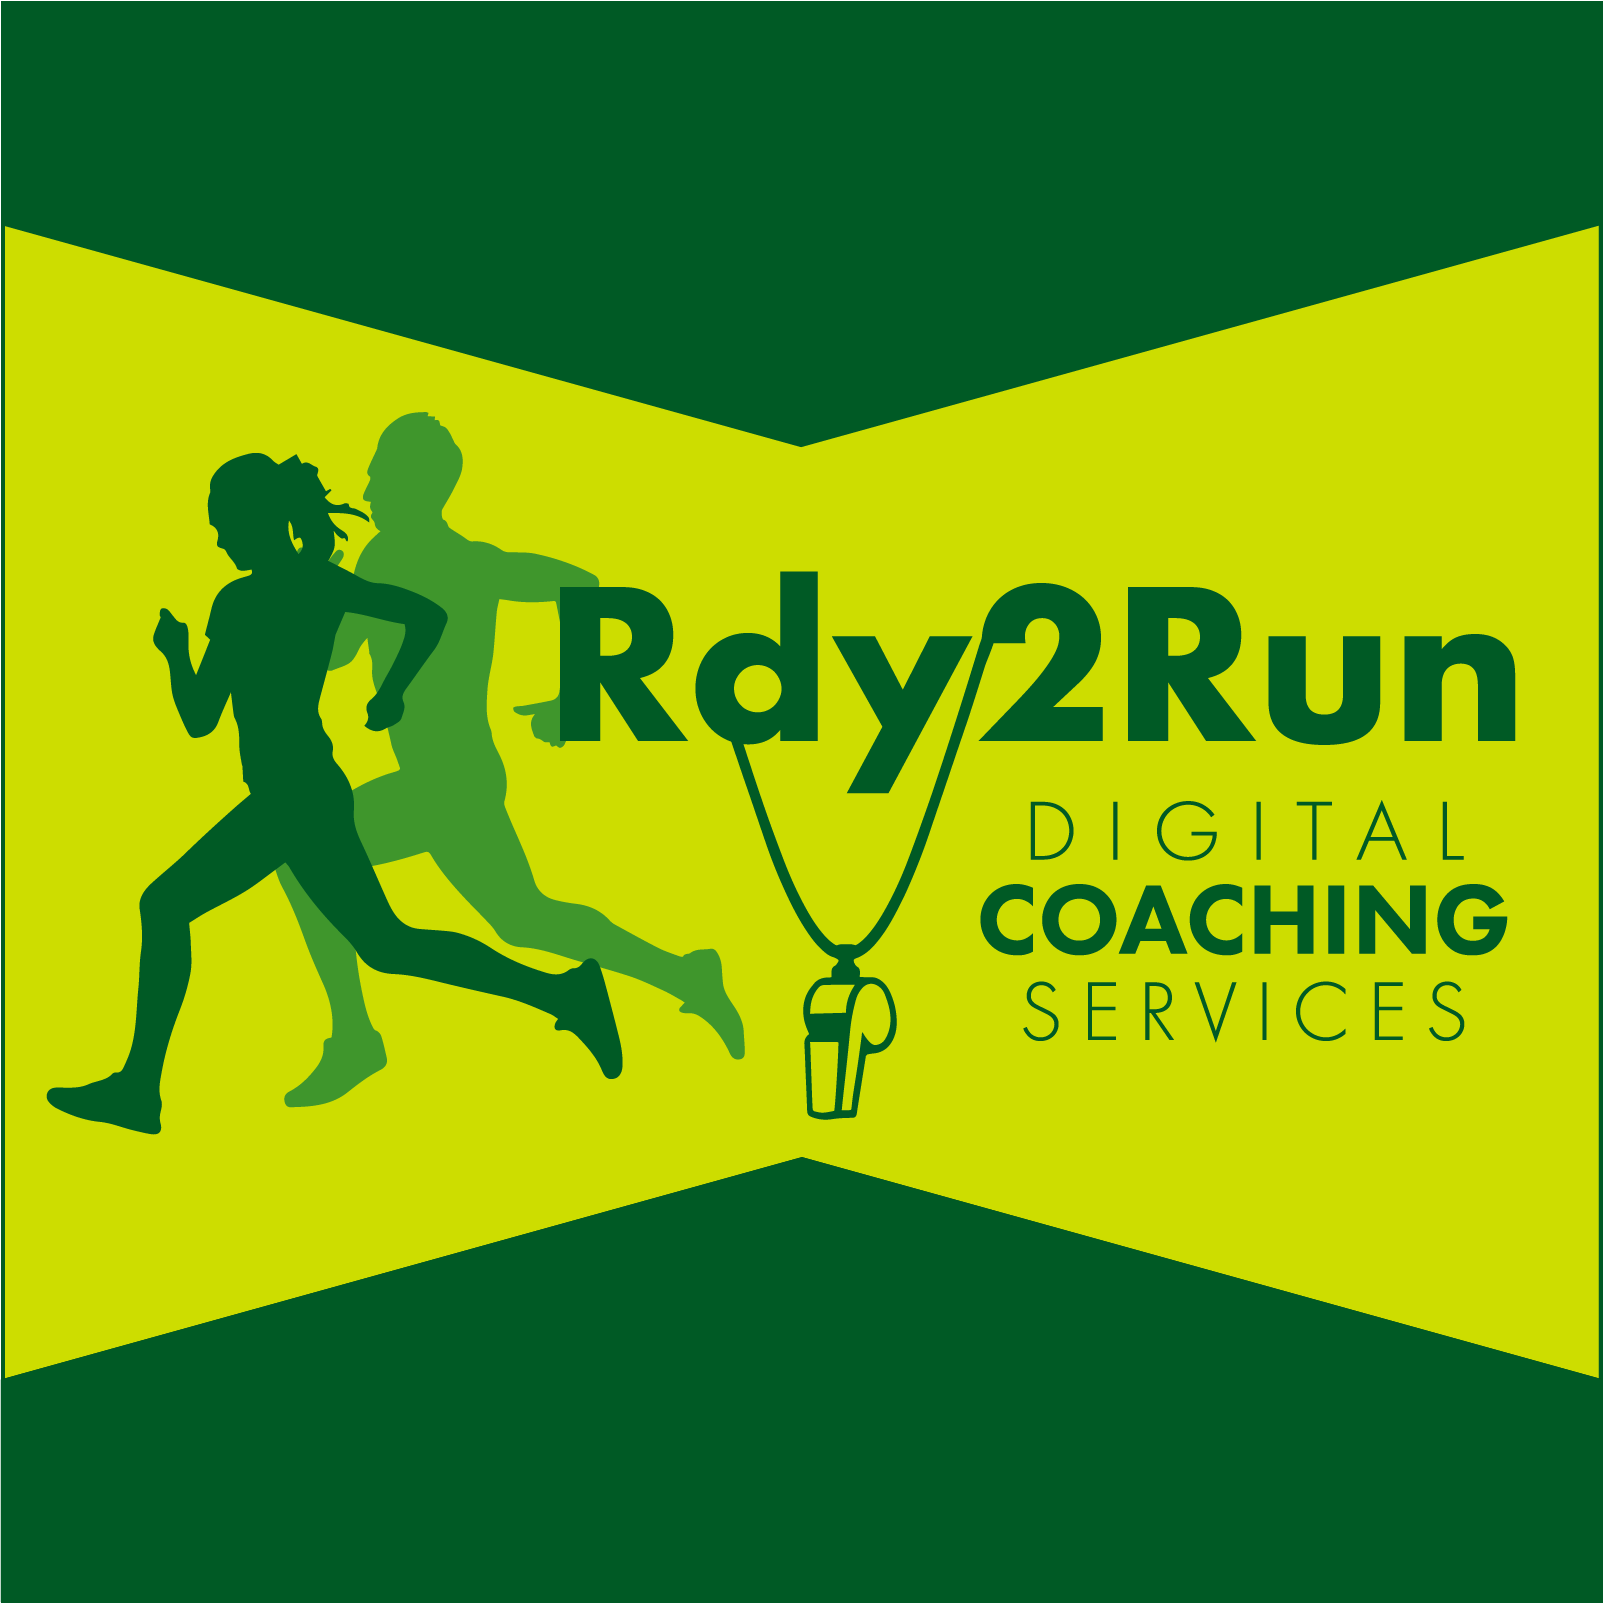 Rdy2Run logo with green writing and yellow background